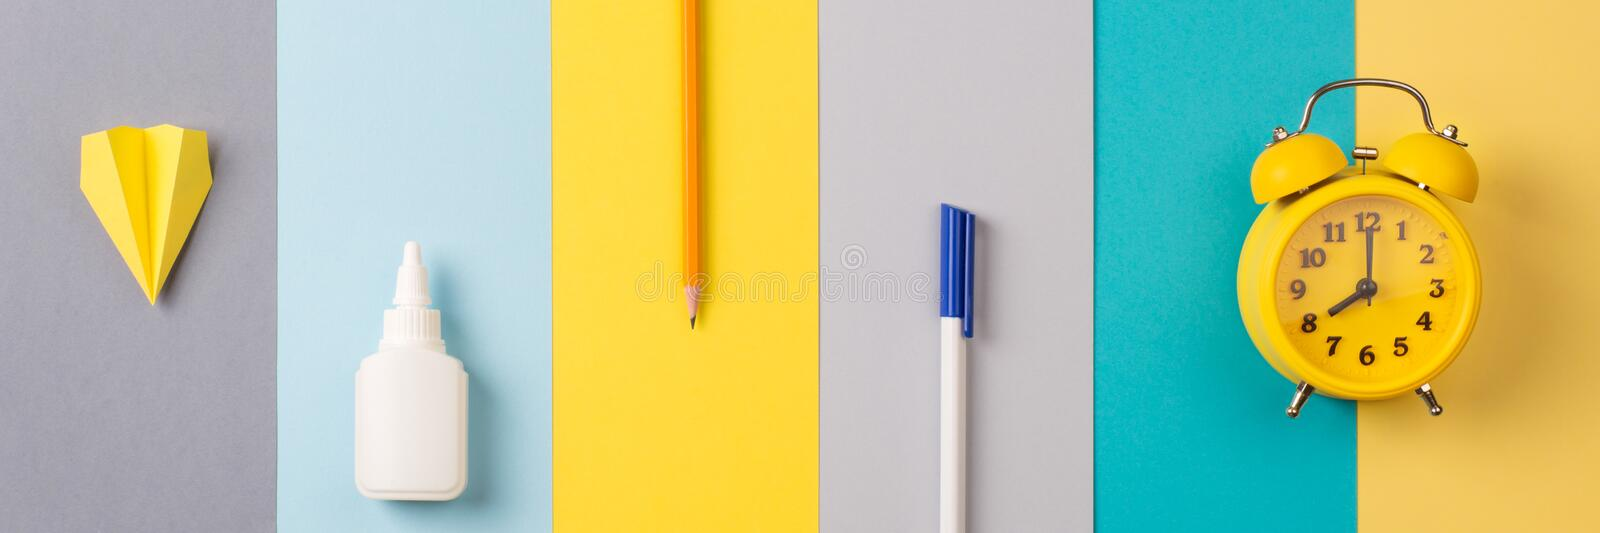 School and office supplies on bright striped background. concept: back to school, minimalism. long banner stock photo